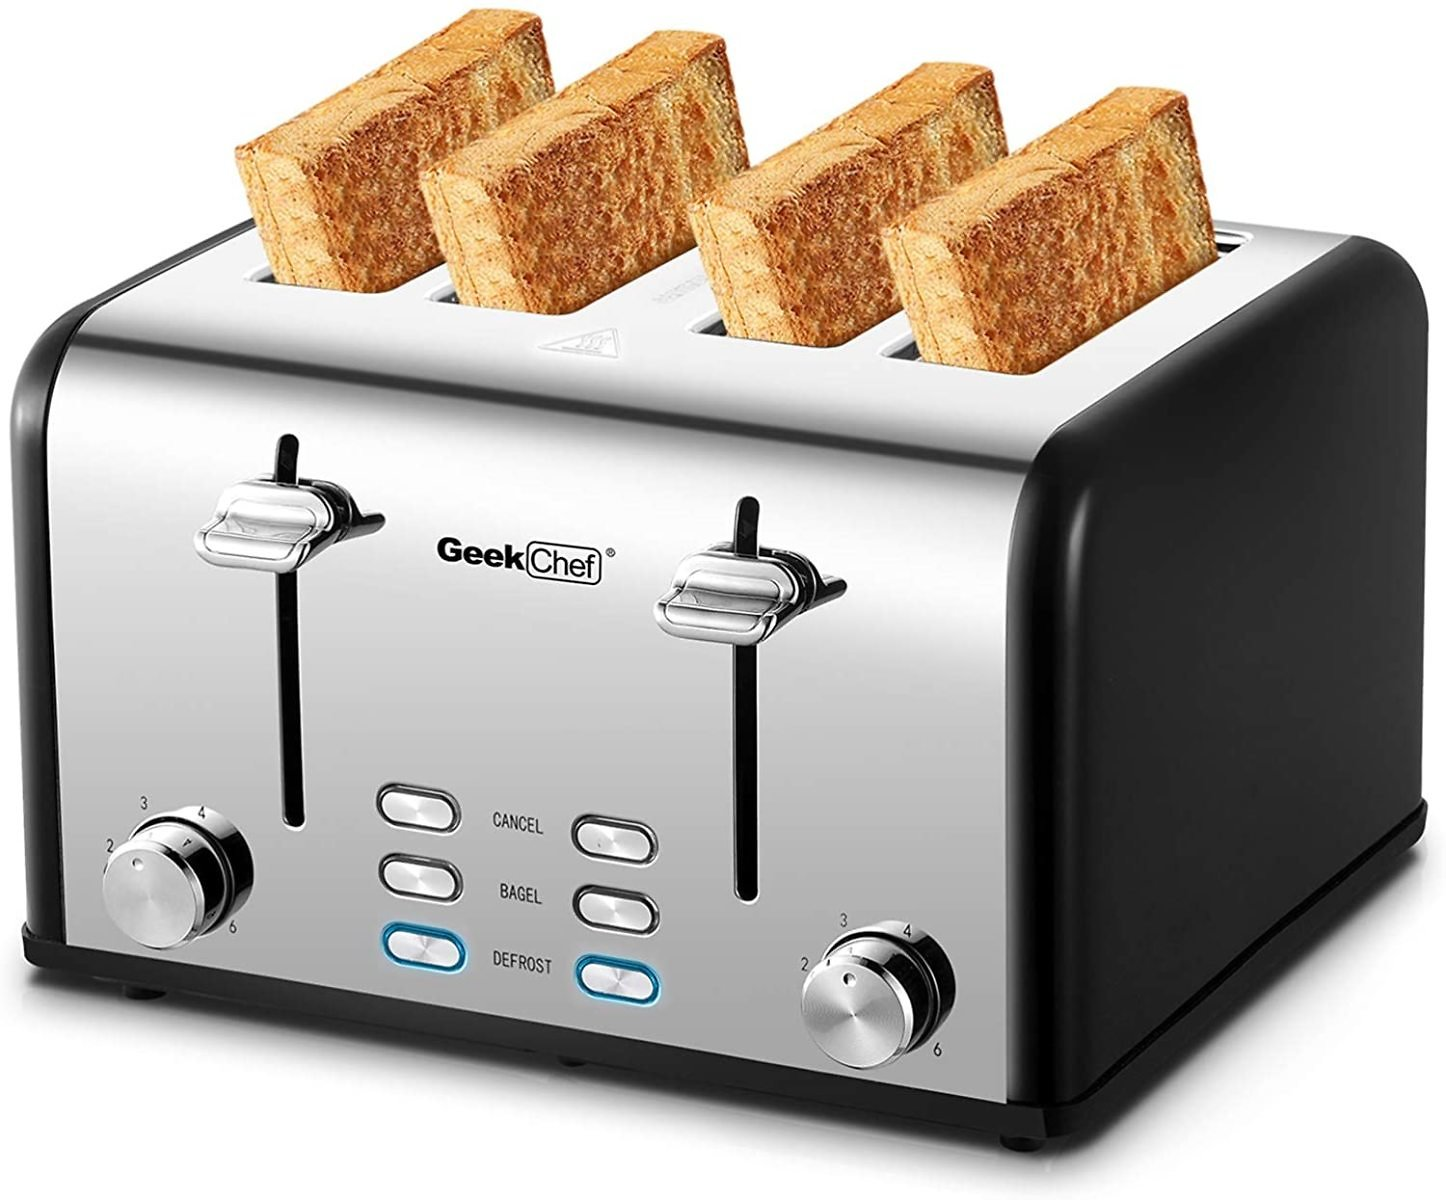 Toaster 4 Slice, Geek Chef Stainless Steel Extra-Wide Slot Toaster with Dual Control Panels of Bagel/Defrost/Cancel Function, 6